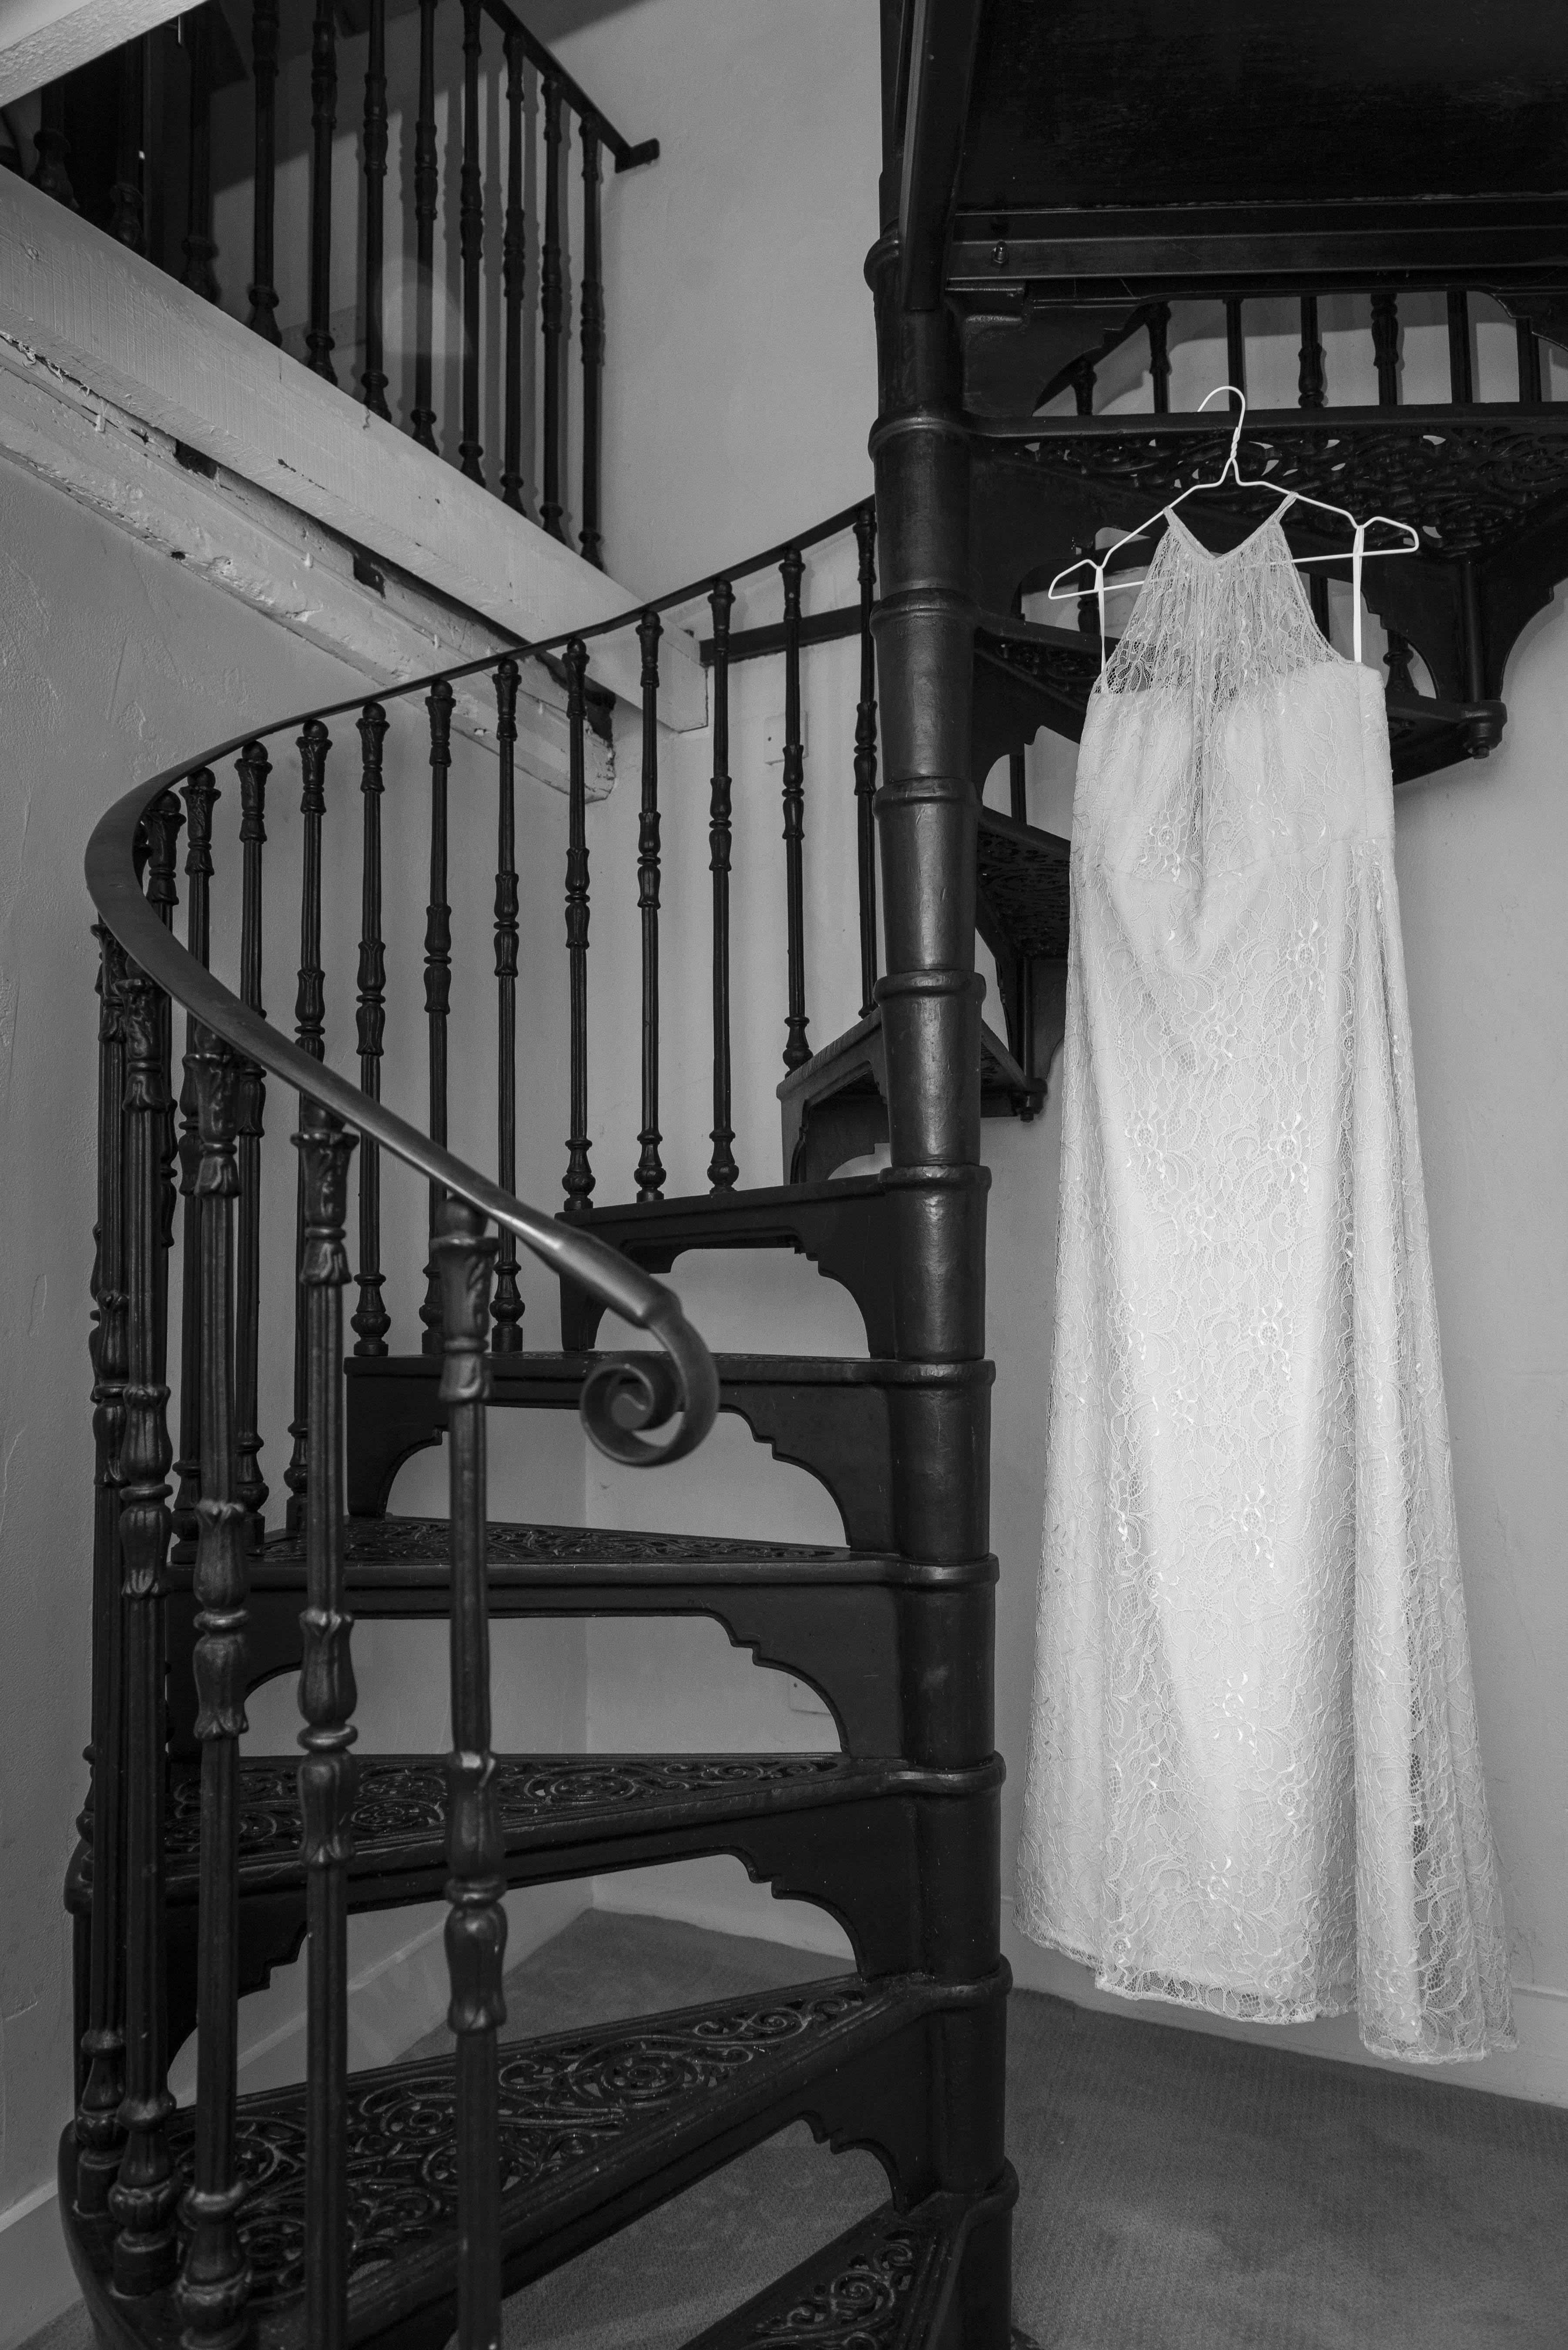 Iron Staircase - Room 302